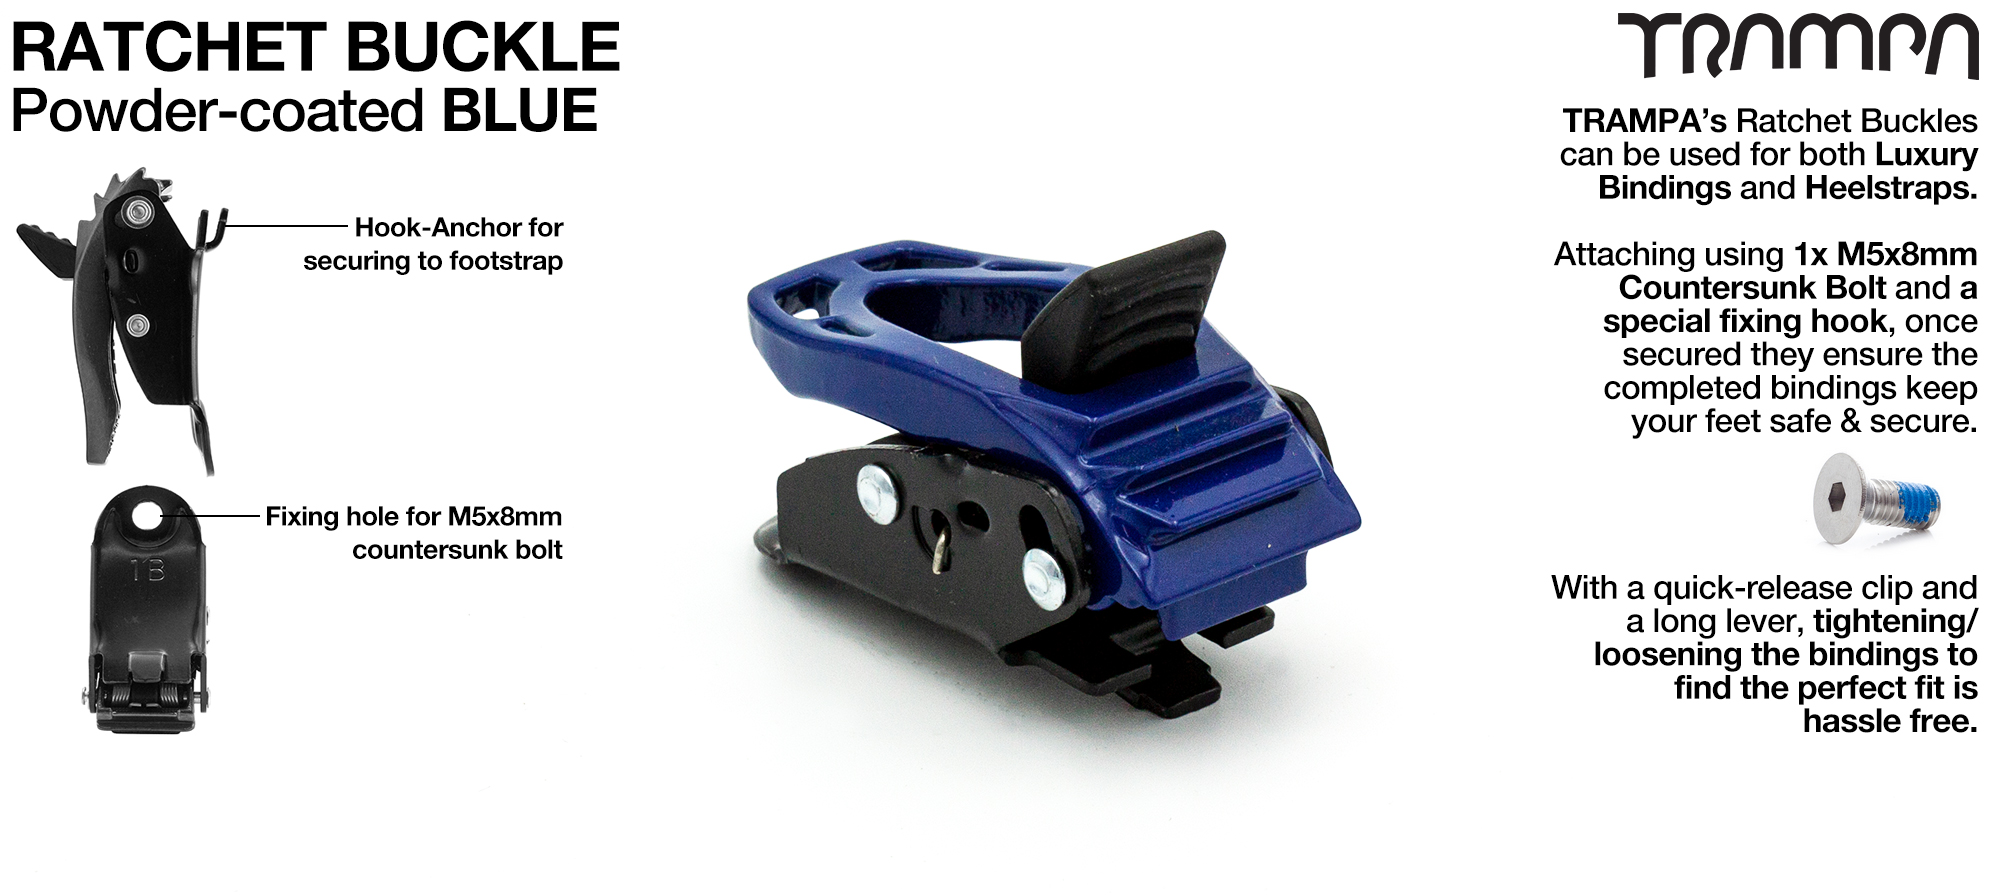 Ratchet Buckle Powder coated Blue